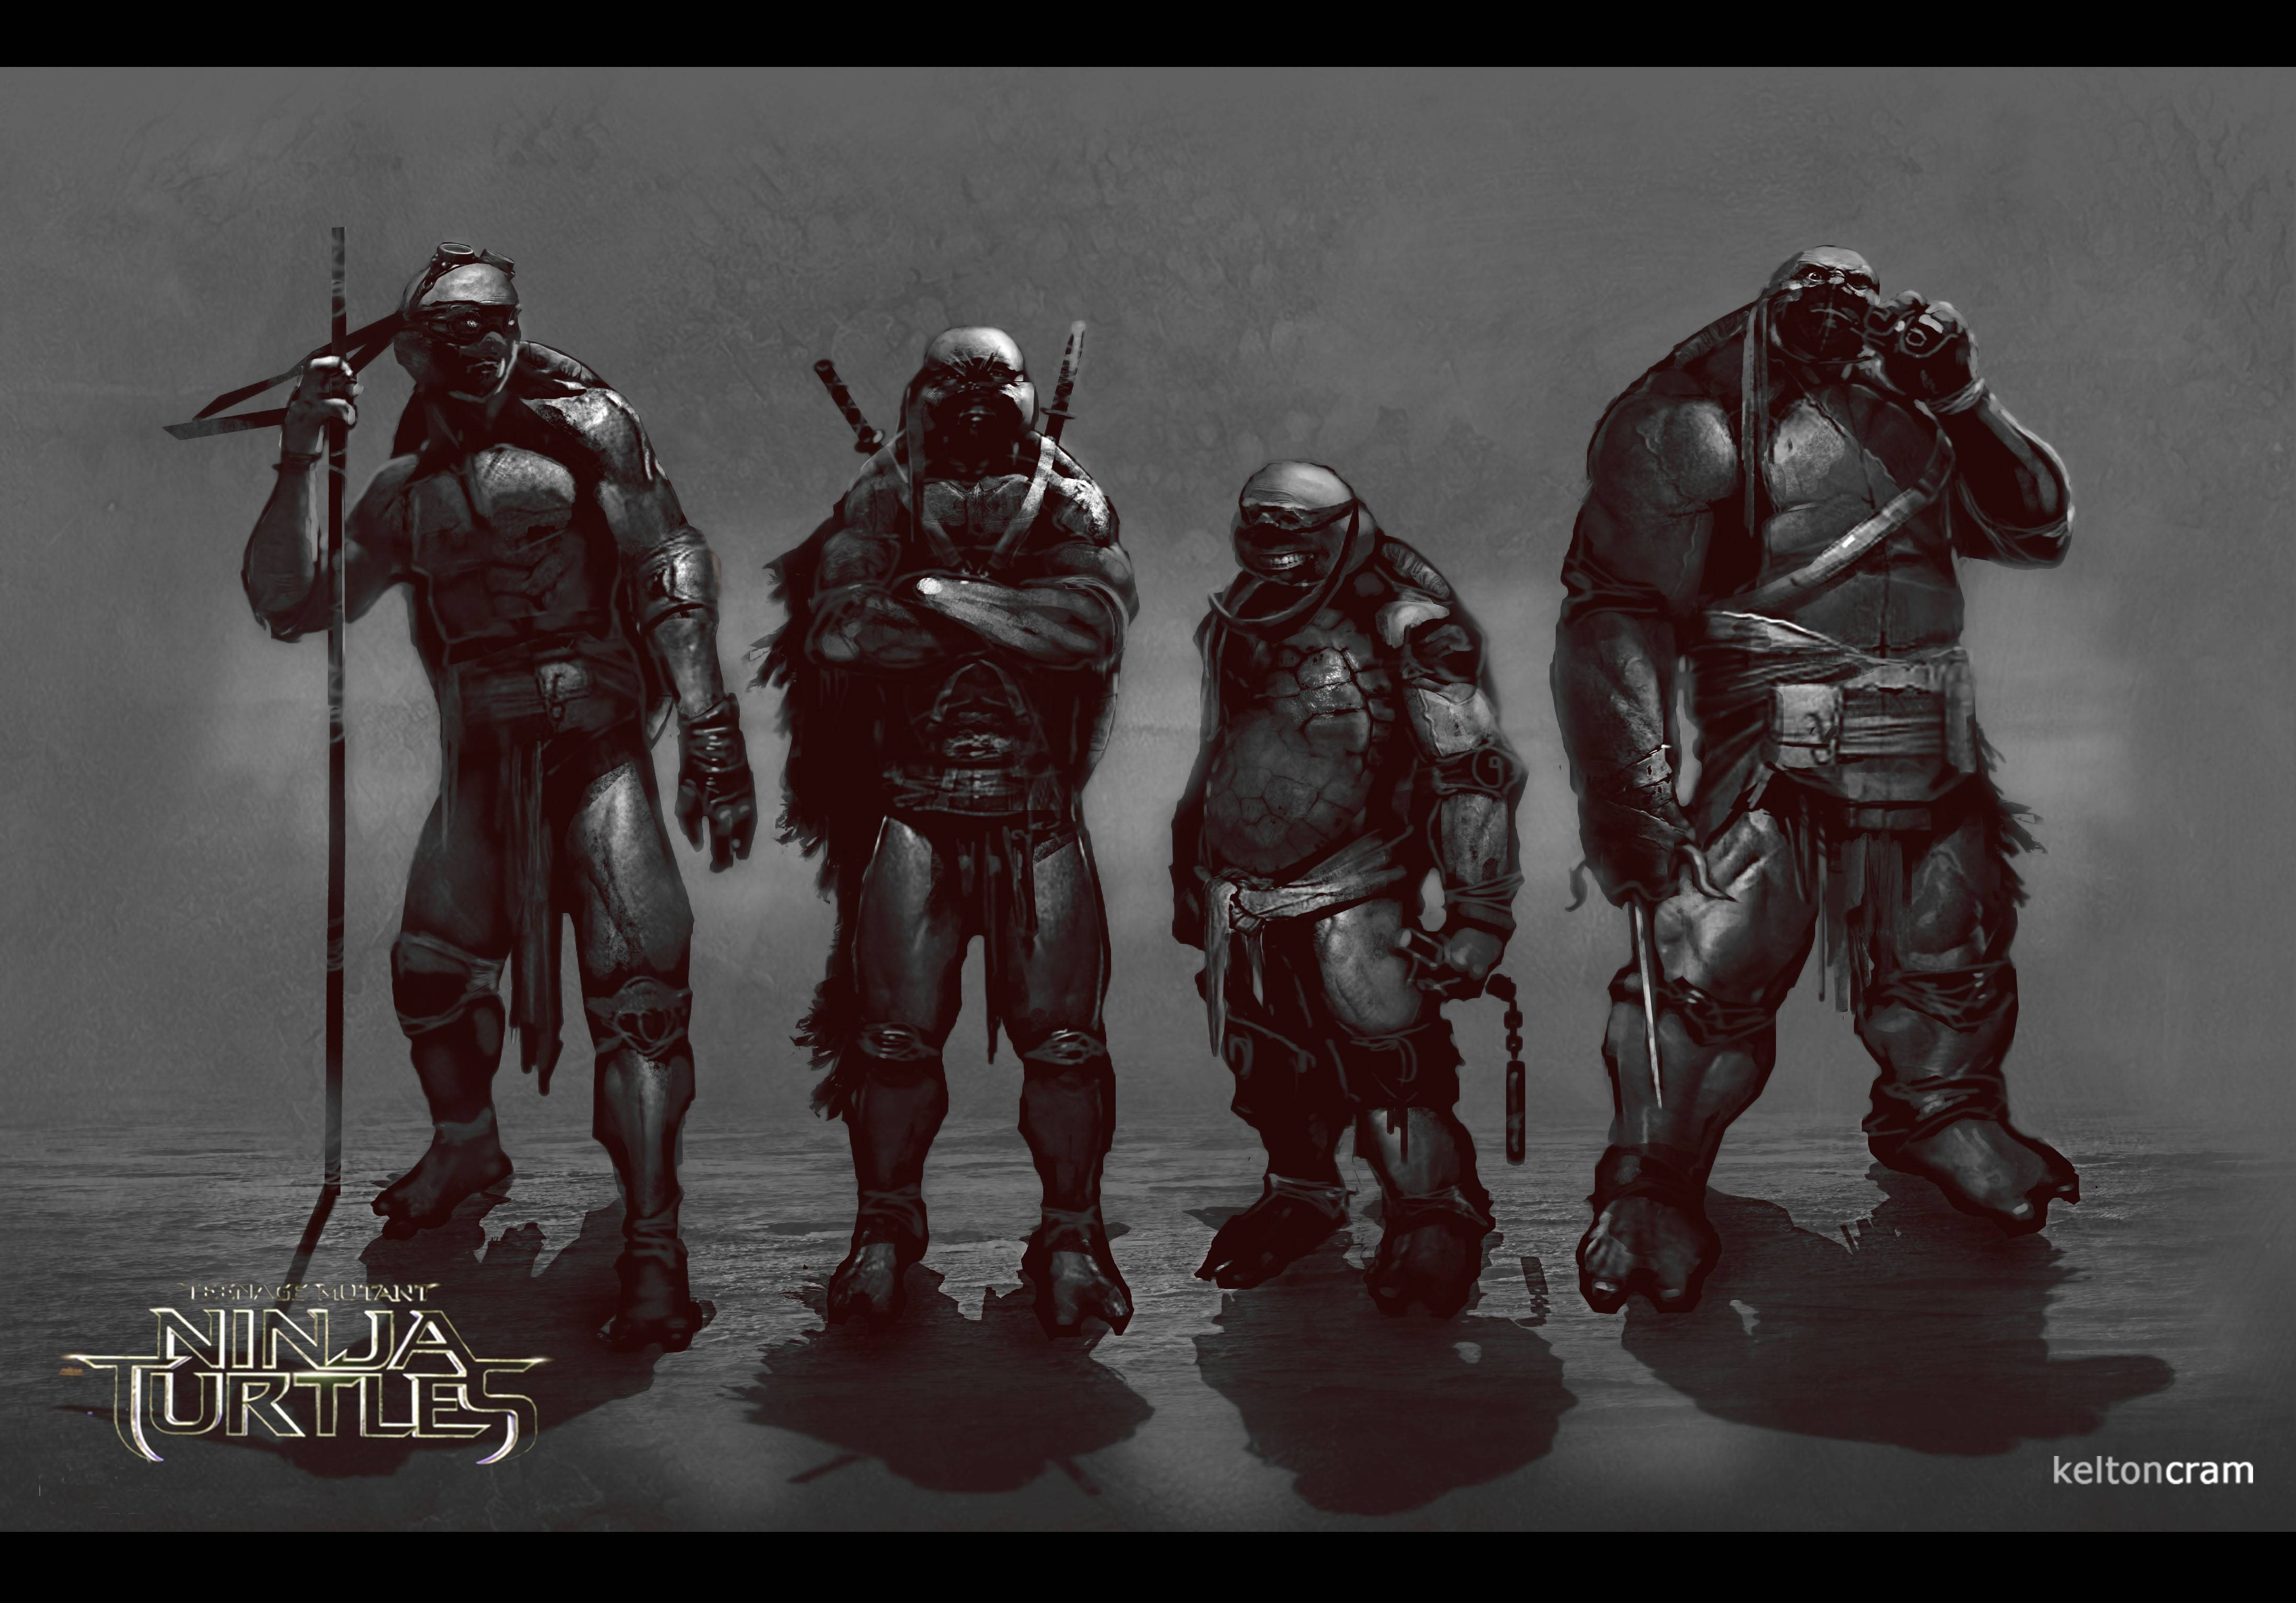 tmntcon1 See What Shredder and the Ninja Turtles Almost Looked Like In the New Movie